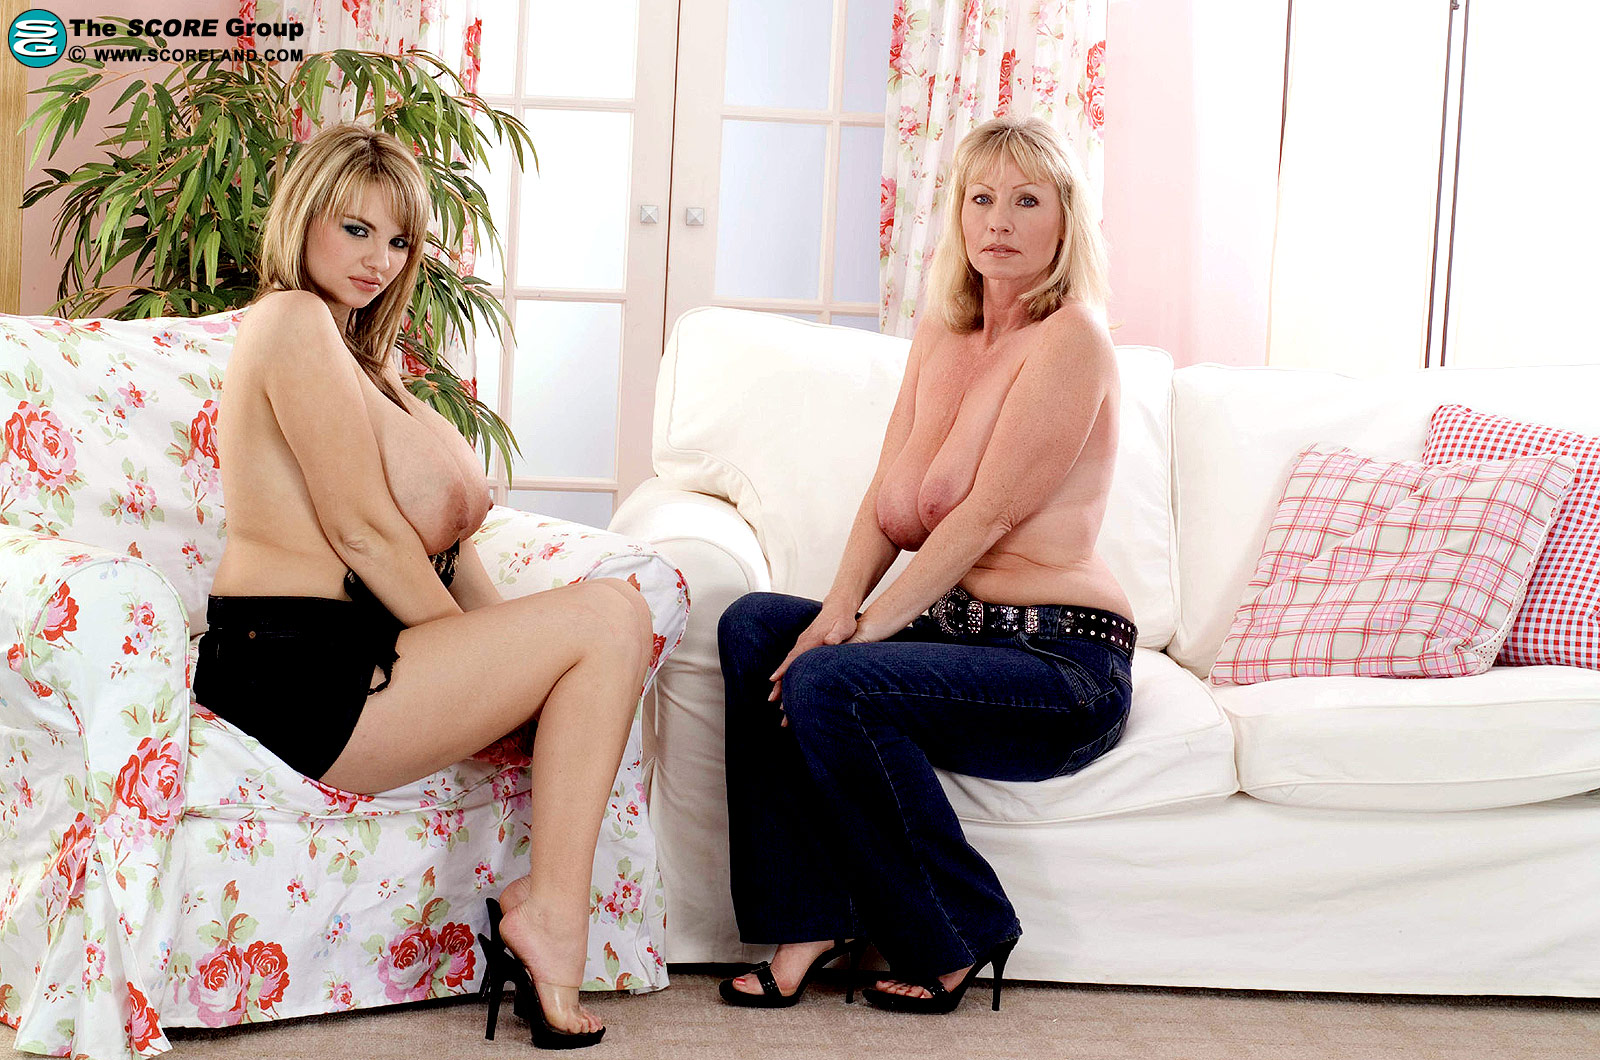 Kelly kay and jane